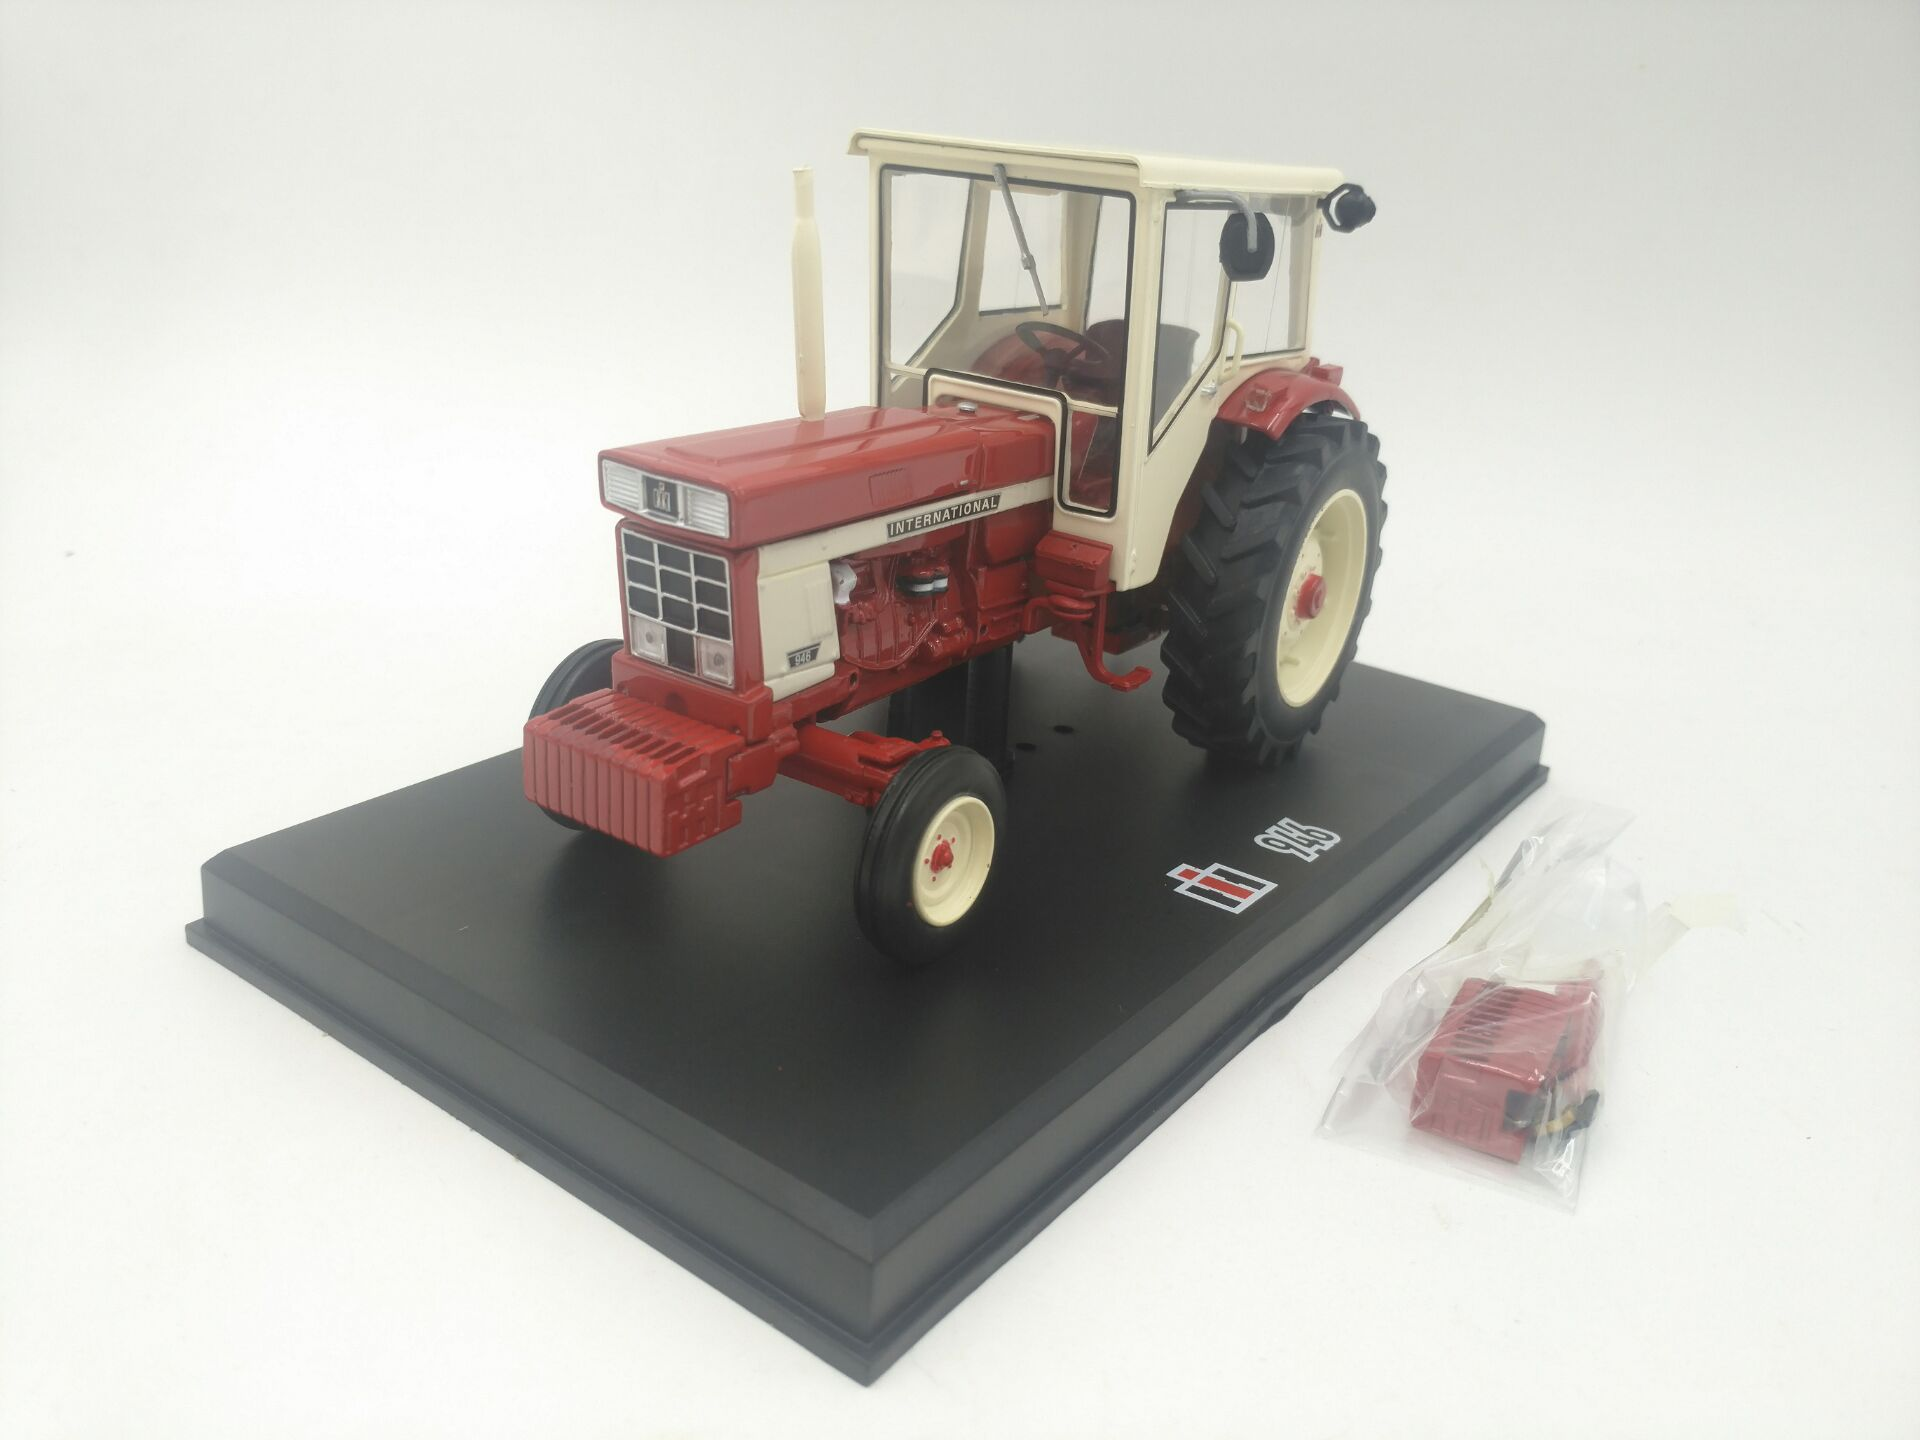 Responsible Uh 1:43 Renault D22 1956 Agricultural Tractors Alloy Toy Car Toys For Children Diecast Model Car Birthday Gift Freeshipping Diecasts & Toy Vehicles